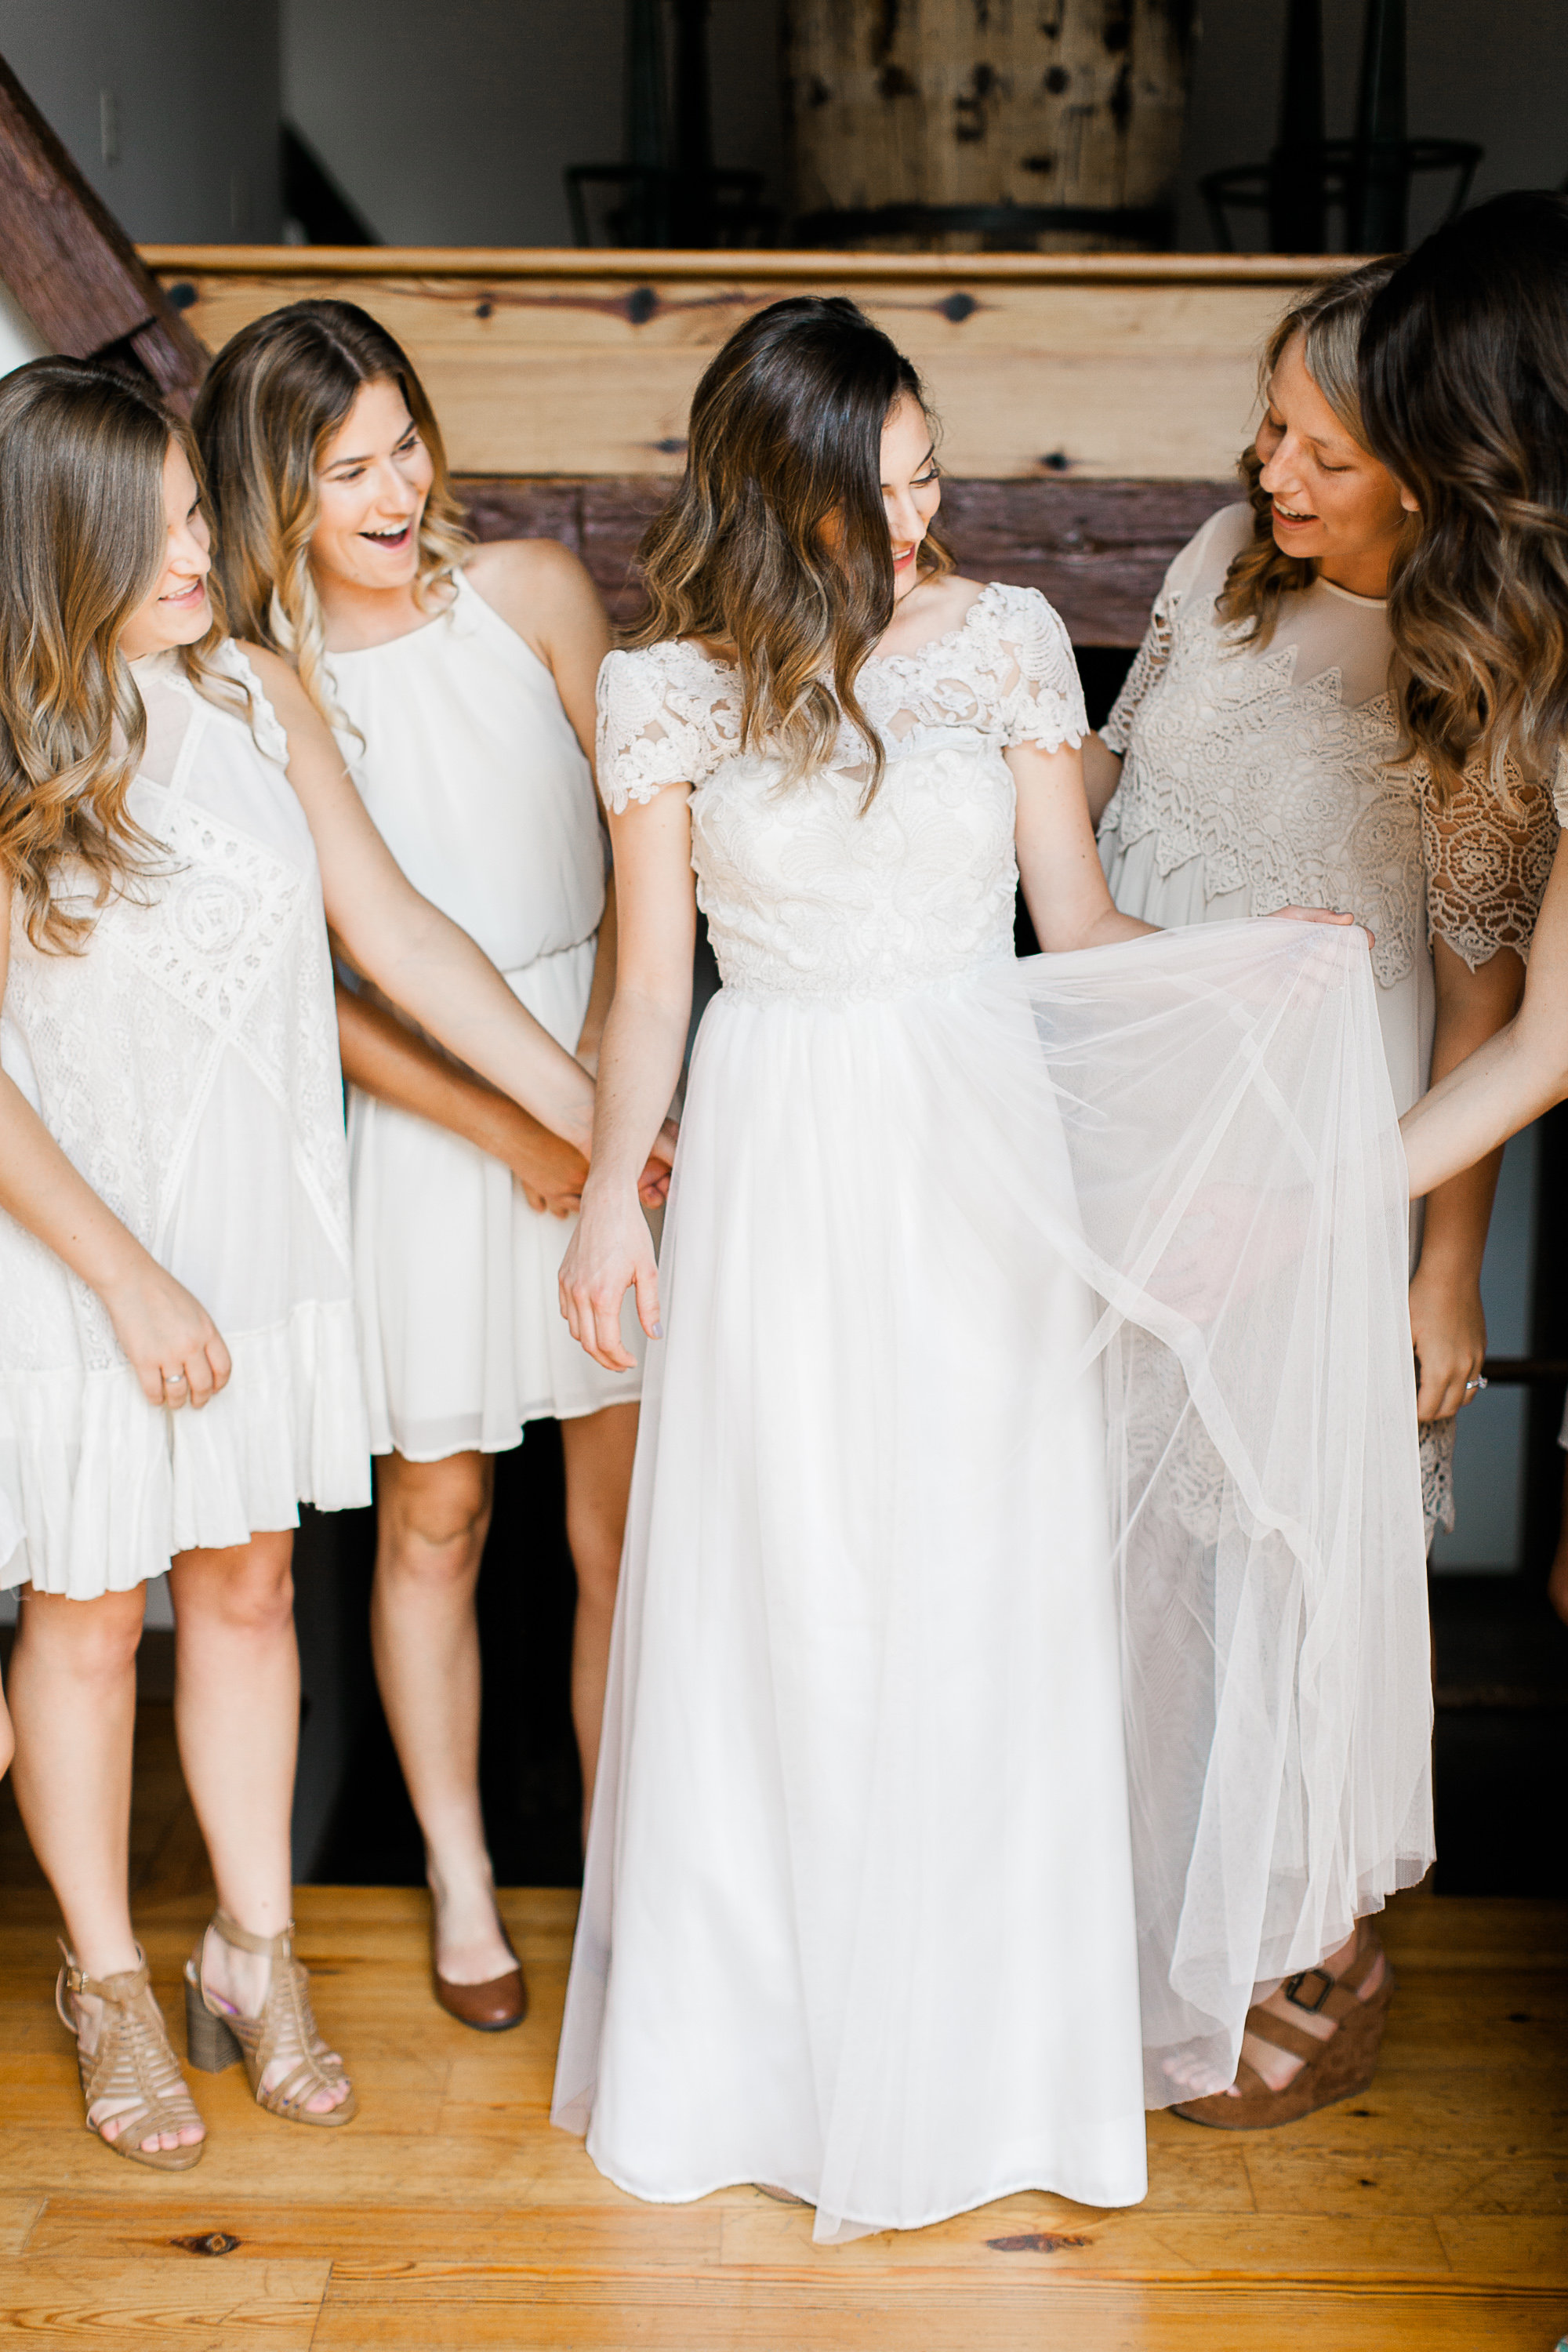 wedding at rockmill brewery, gown by BHLDN